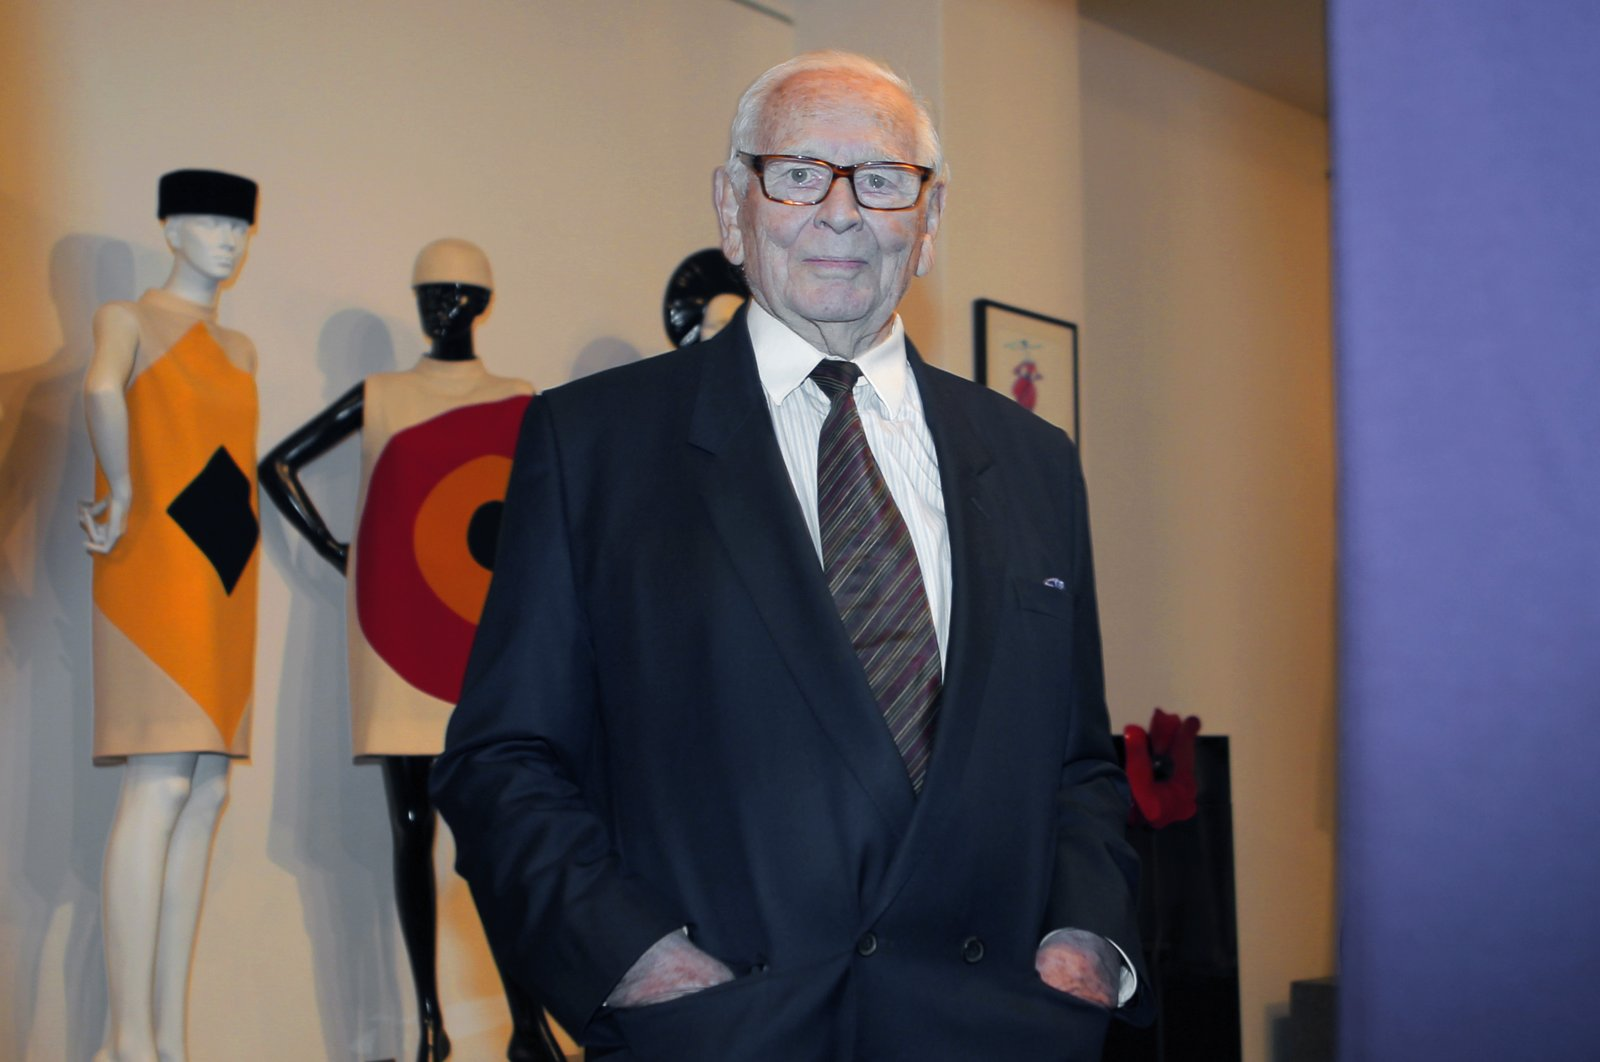 French fashion designer Pierre Cardin poses with a dress on a mannequin during the inauguration of the Pierre Cardin Museum in Paris, France, Nov. 13, 2014. (AP Photo)